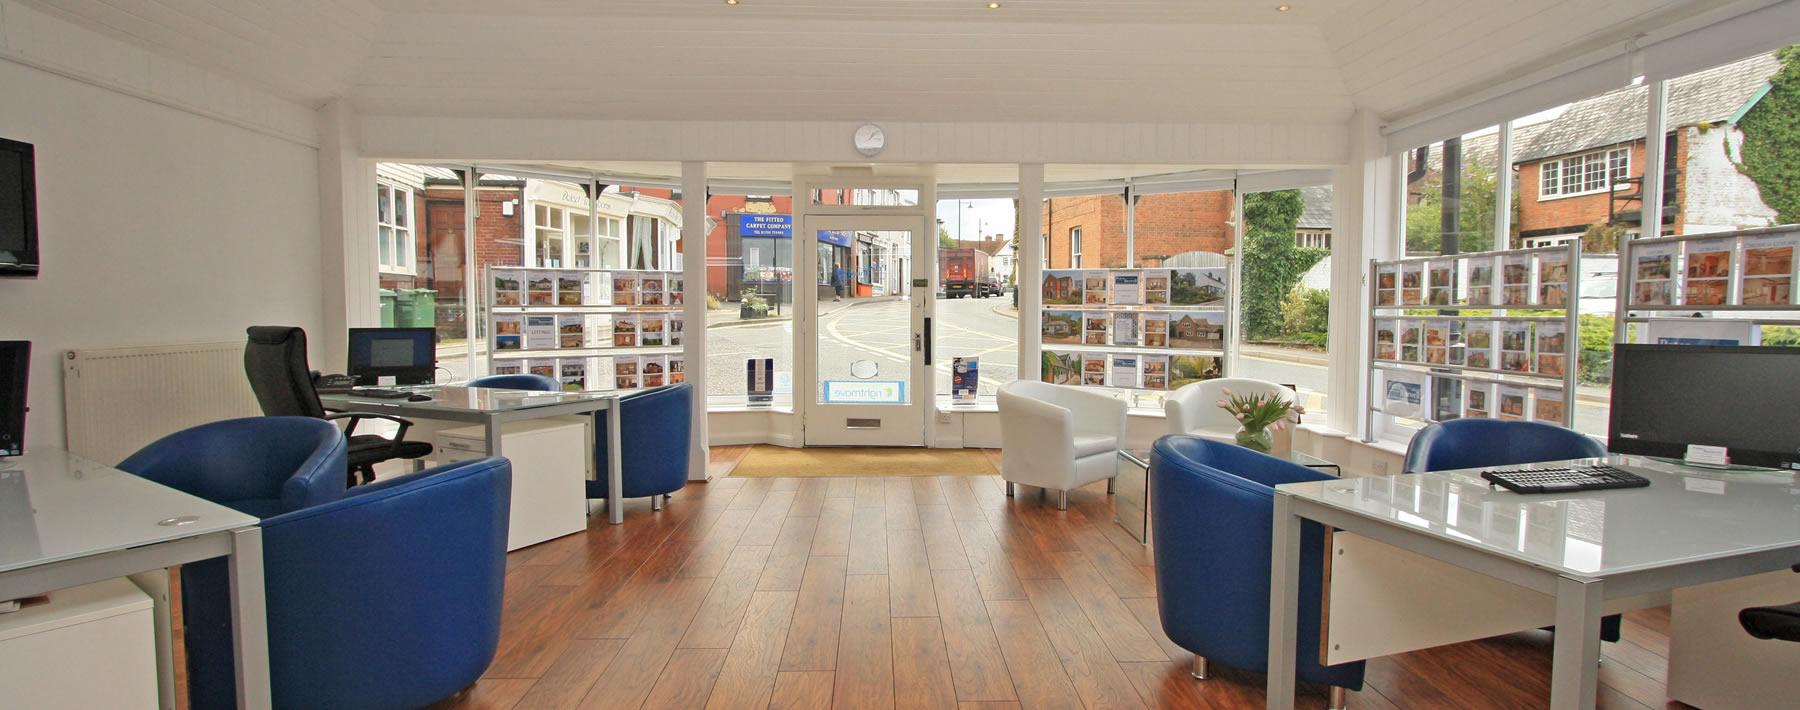 Peter Buswell Estate Agents